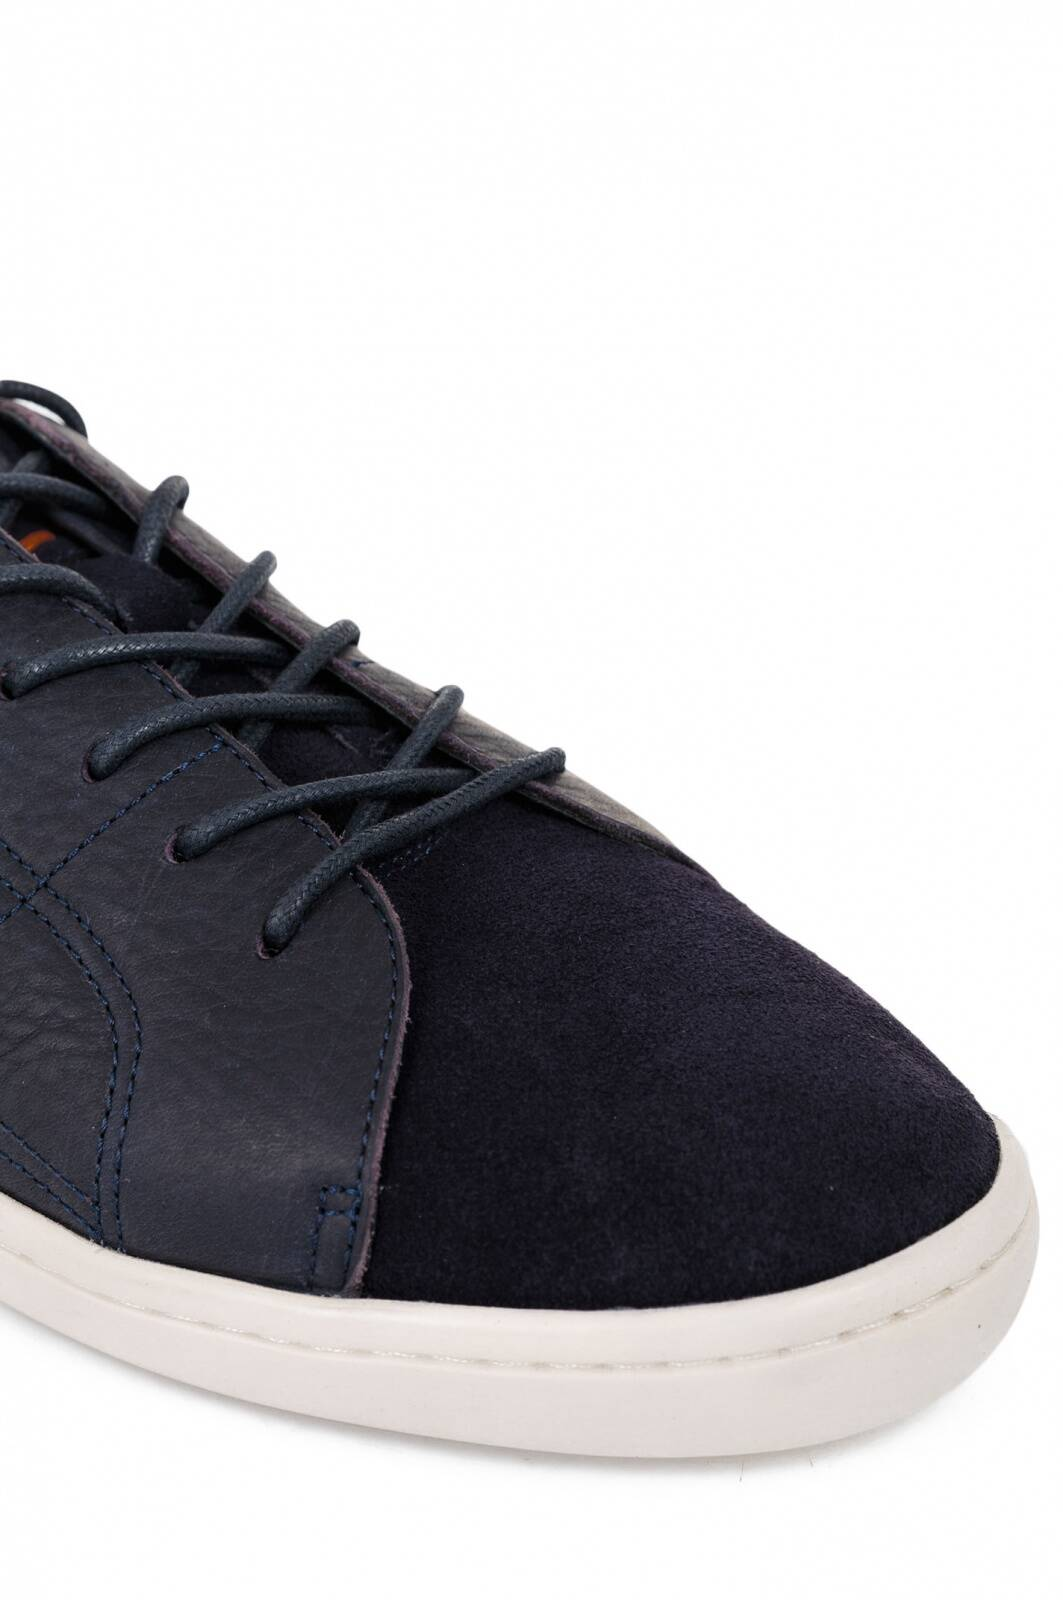 skor sneakers boss orange navy blue sneakers. Black Bedroom Furniture Sets. Home Design Ideas